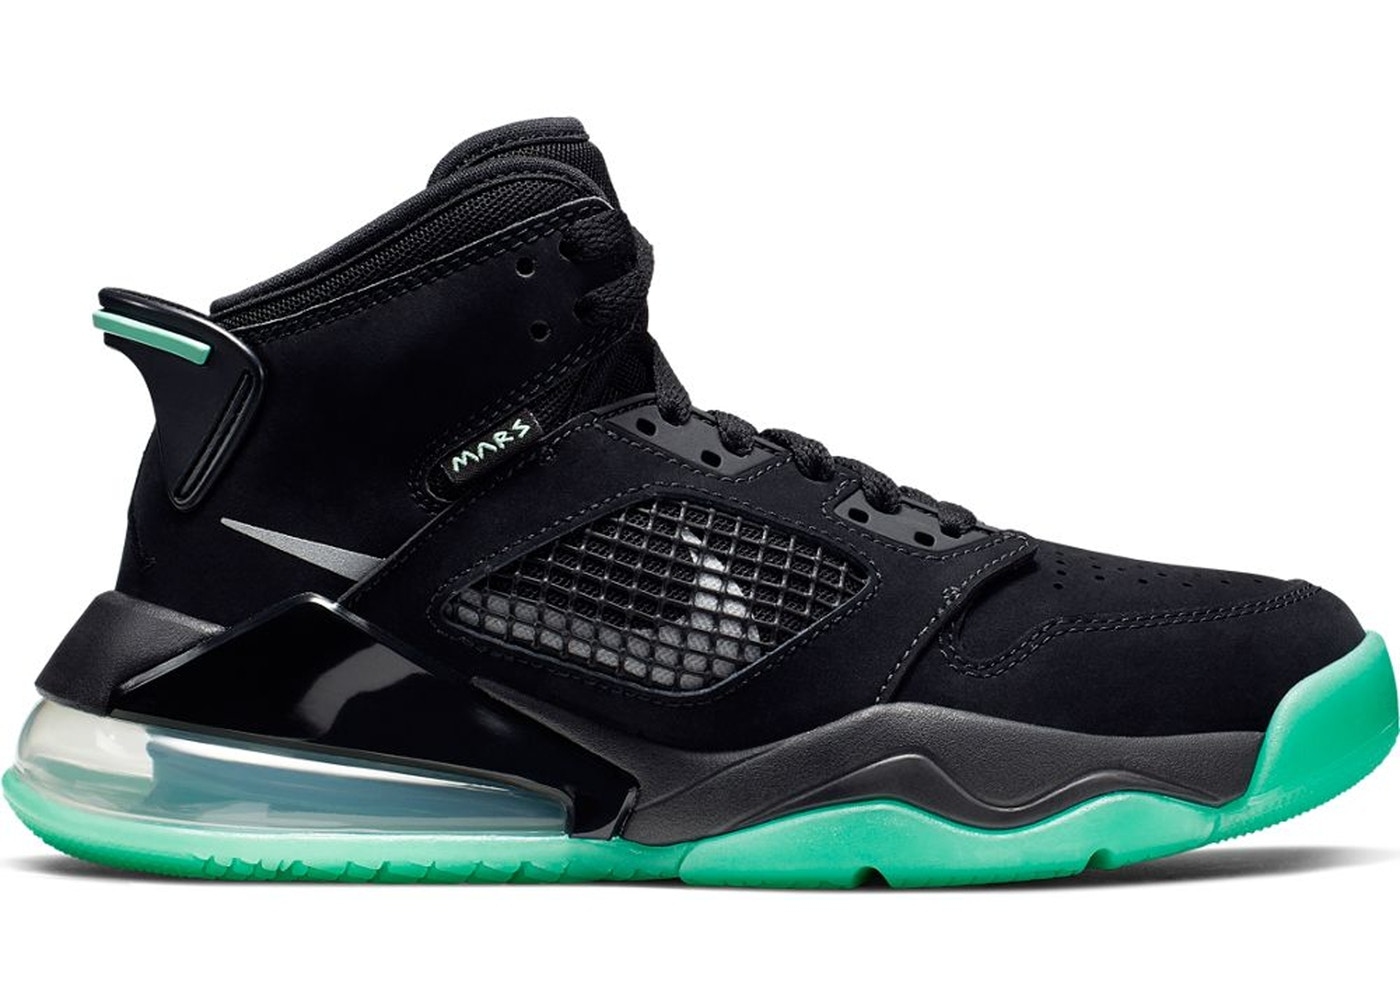 475cb680 Sell. or Ask. Size: 7Y. View All Bids. Jordan Mars 270 Black Green Glow ...